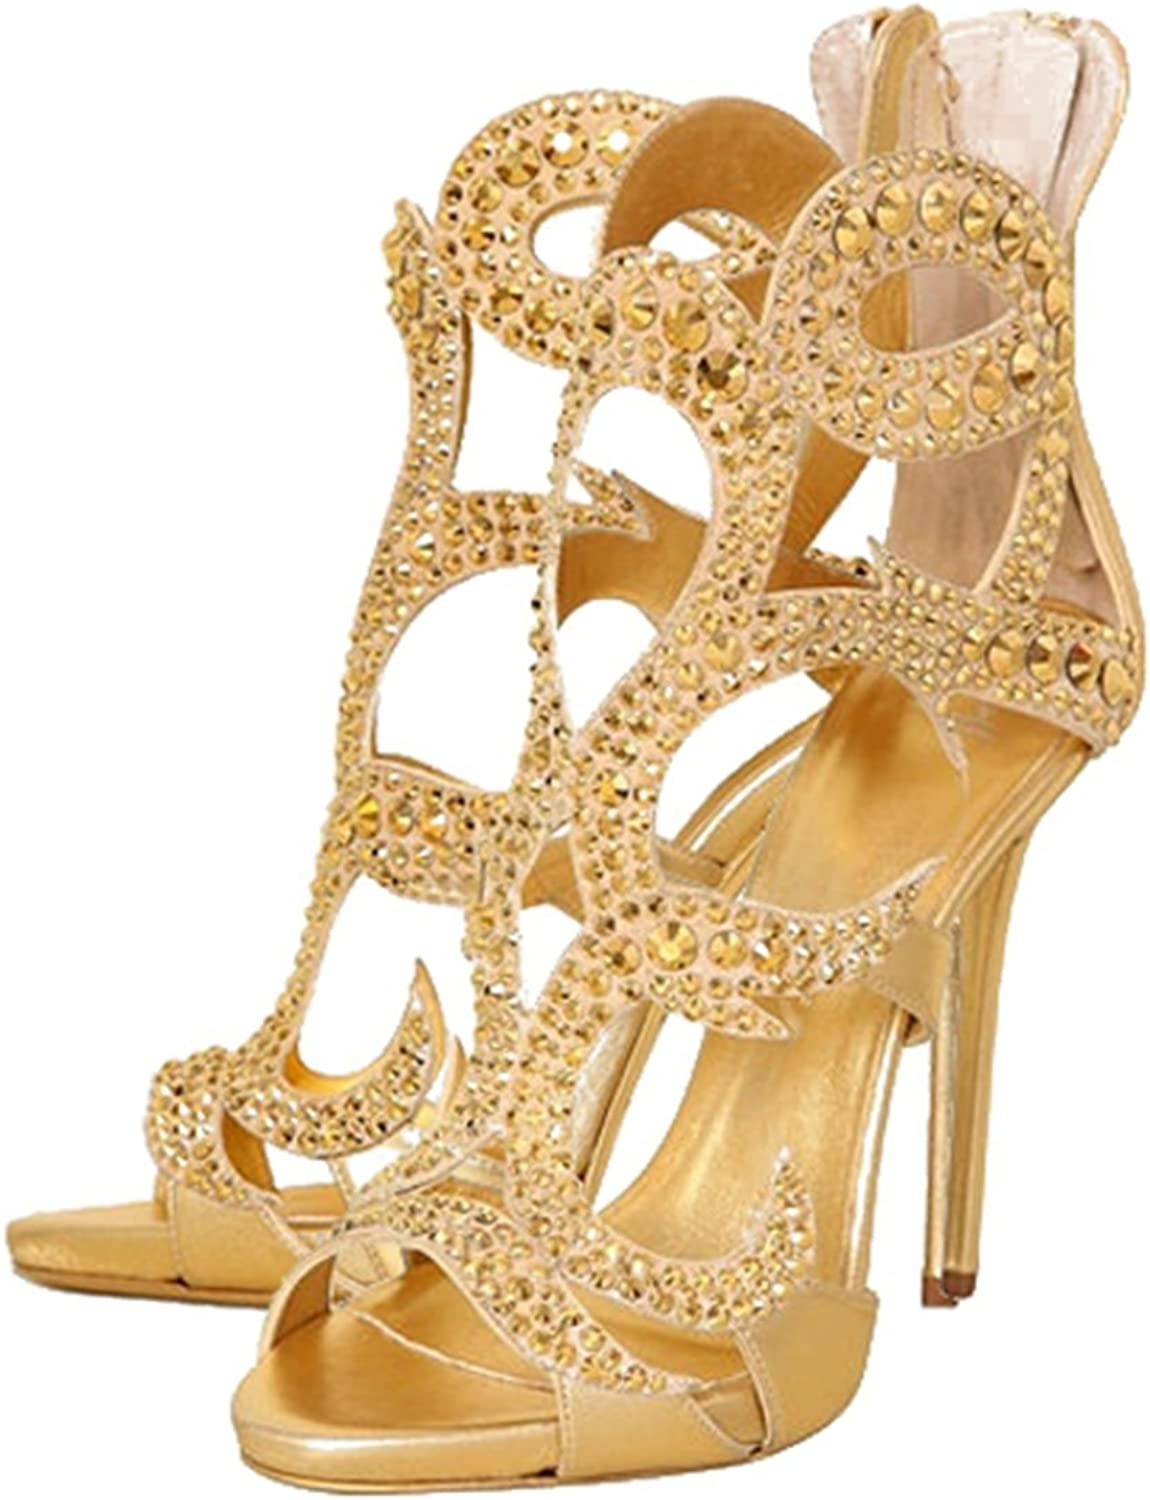 Amy Q Laides Rhinestone Open Toe Cut Out Zipper High Heel Sandals shoes for Wedding Party Dress